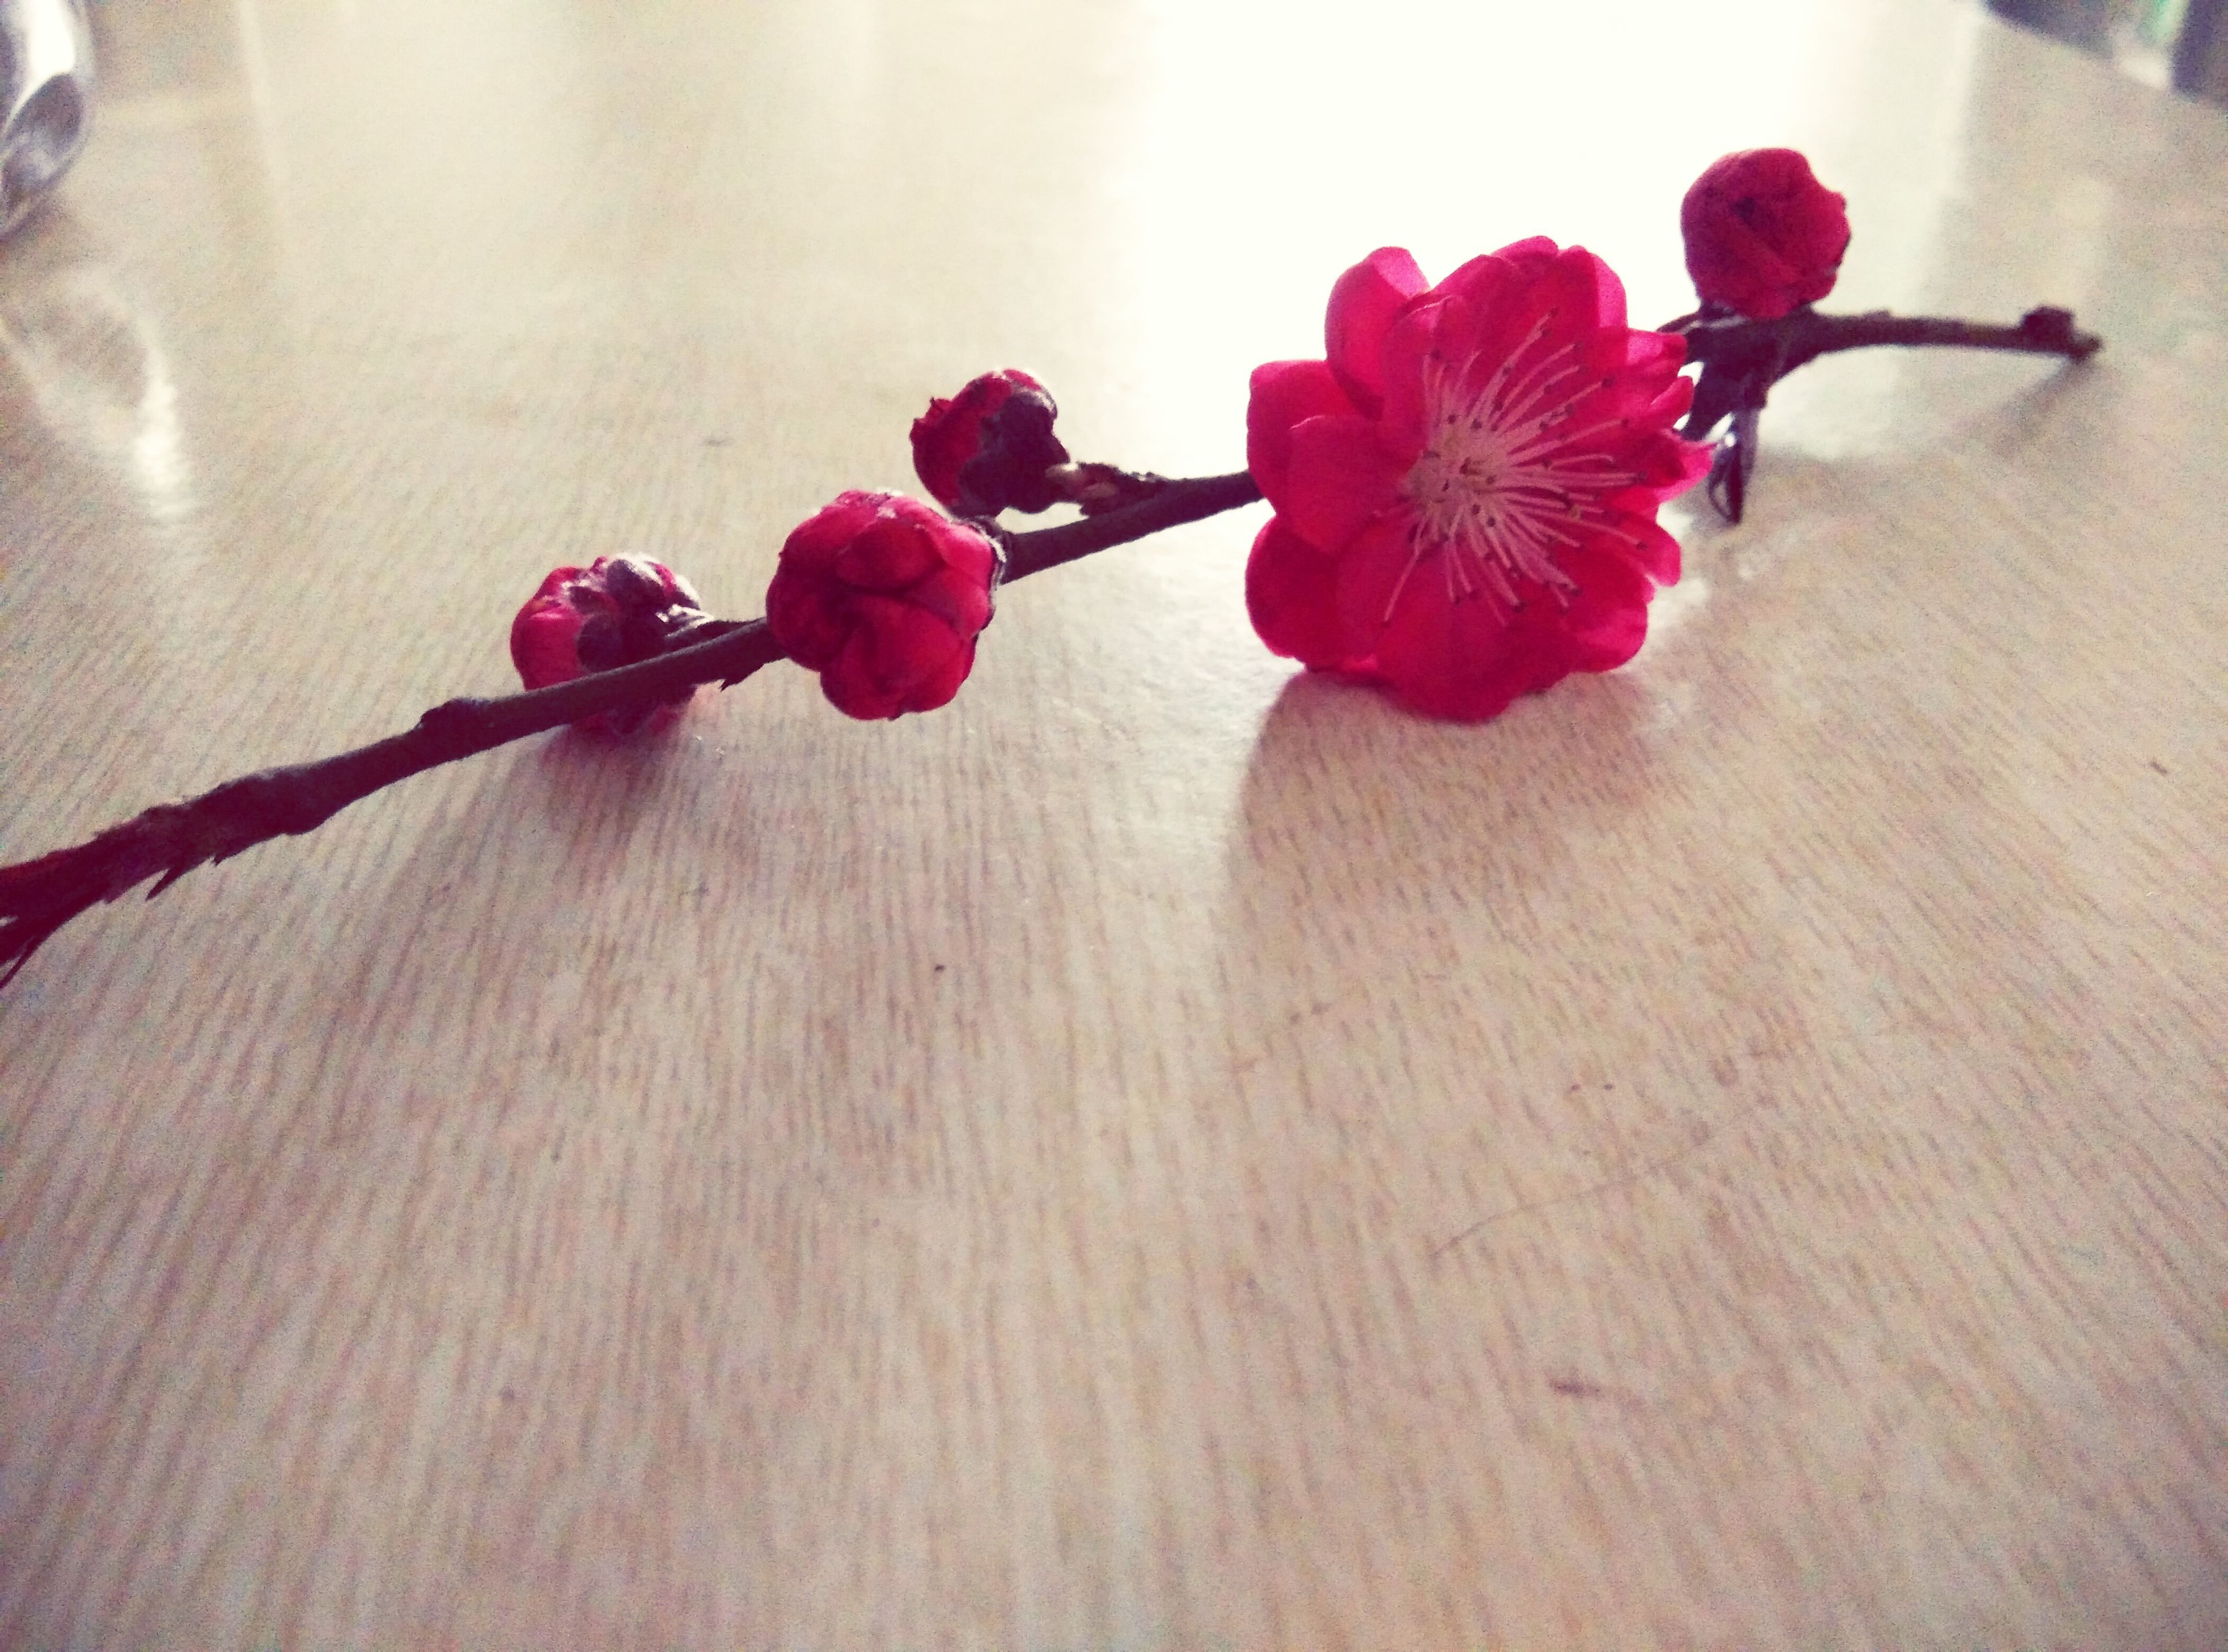 flower, indoors, freshness, red, fragility, table, decoration, close-up, petal, stem, vase, pink color, still life, home interior, no people, wood - material, nature, plant, bud, hanging